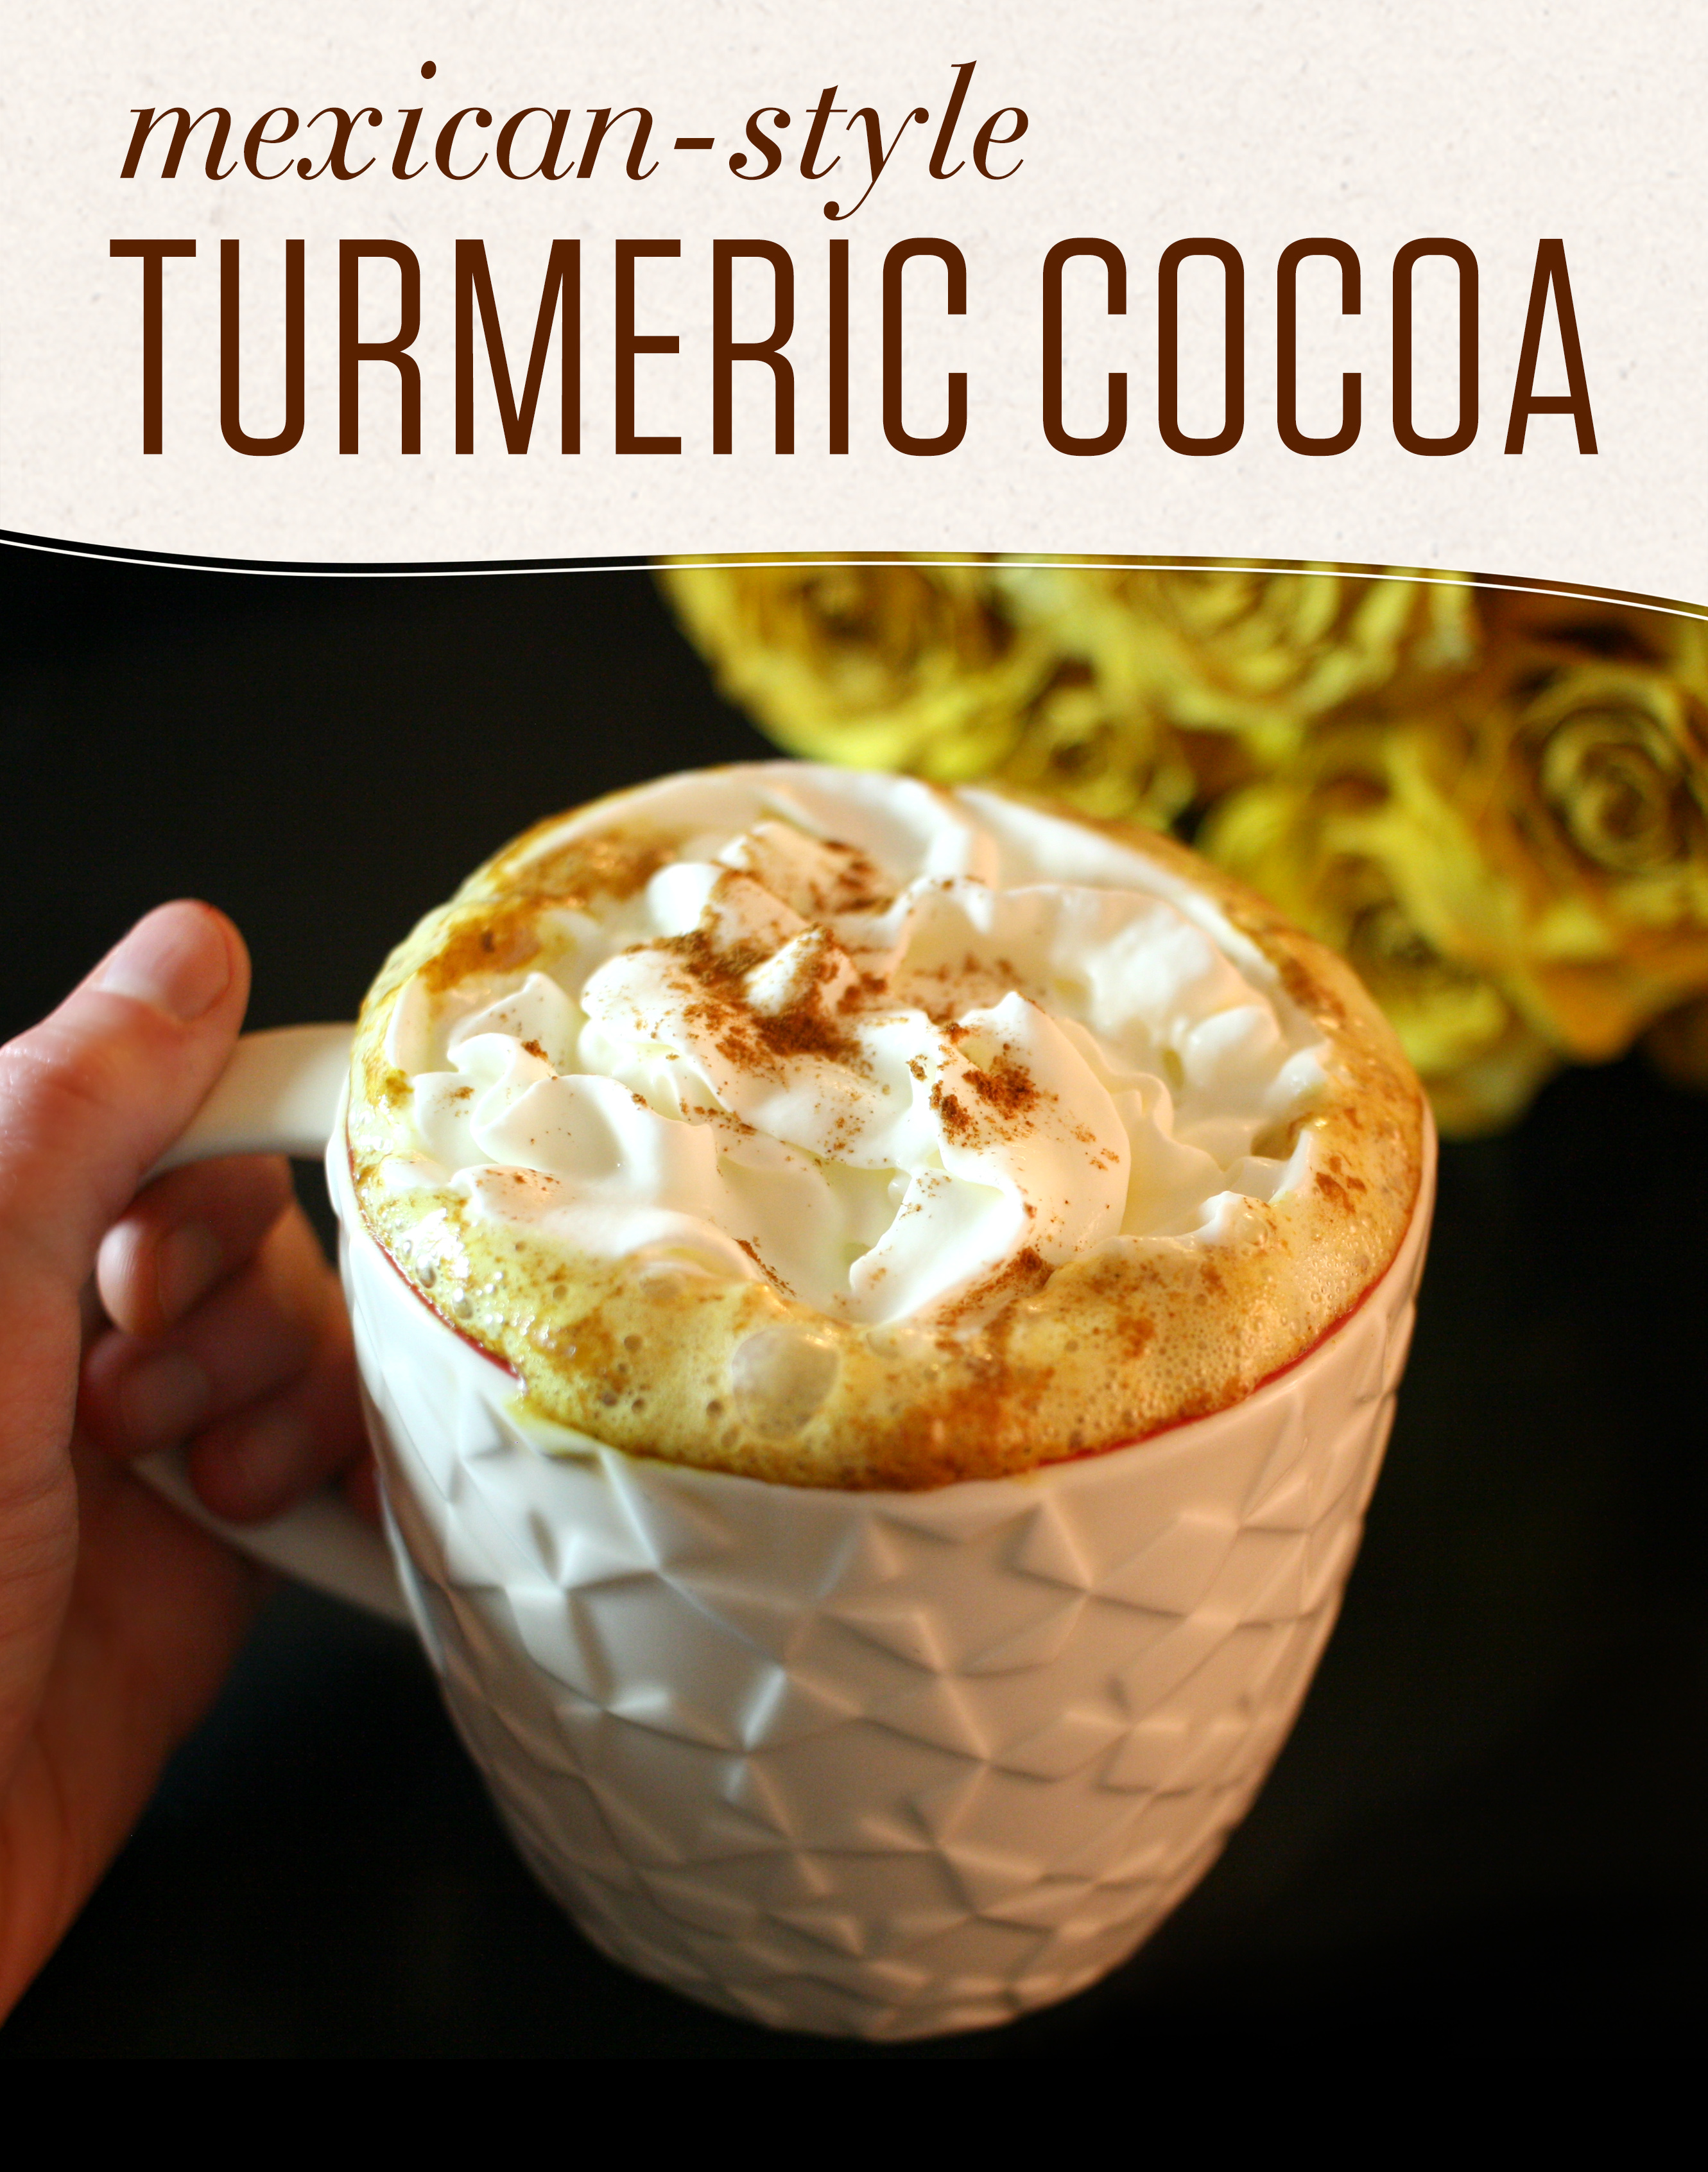 This easy Mexican-style Turmeric Hot Cocoa combines the spicy-sweet flavor of Mexican hot chocolate with turmeric and spices for a delicious treat!